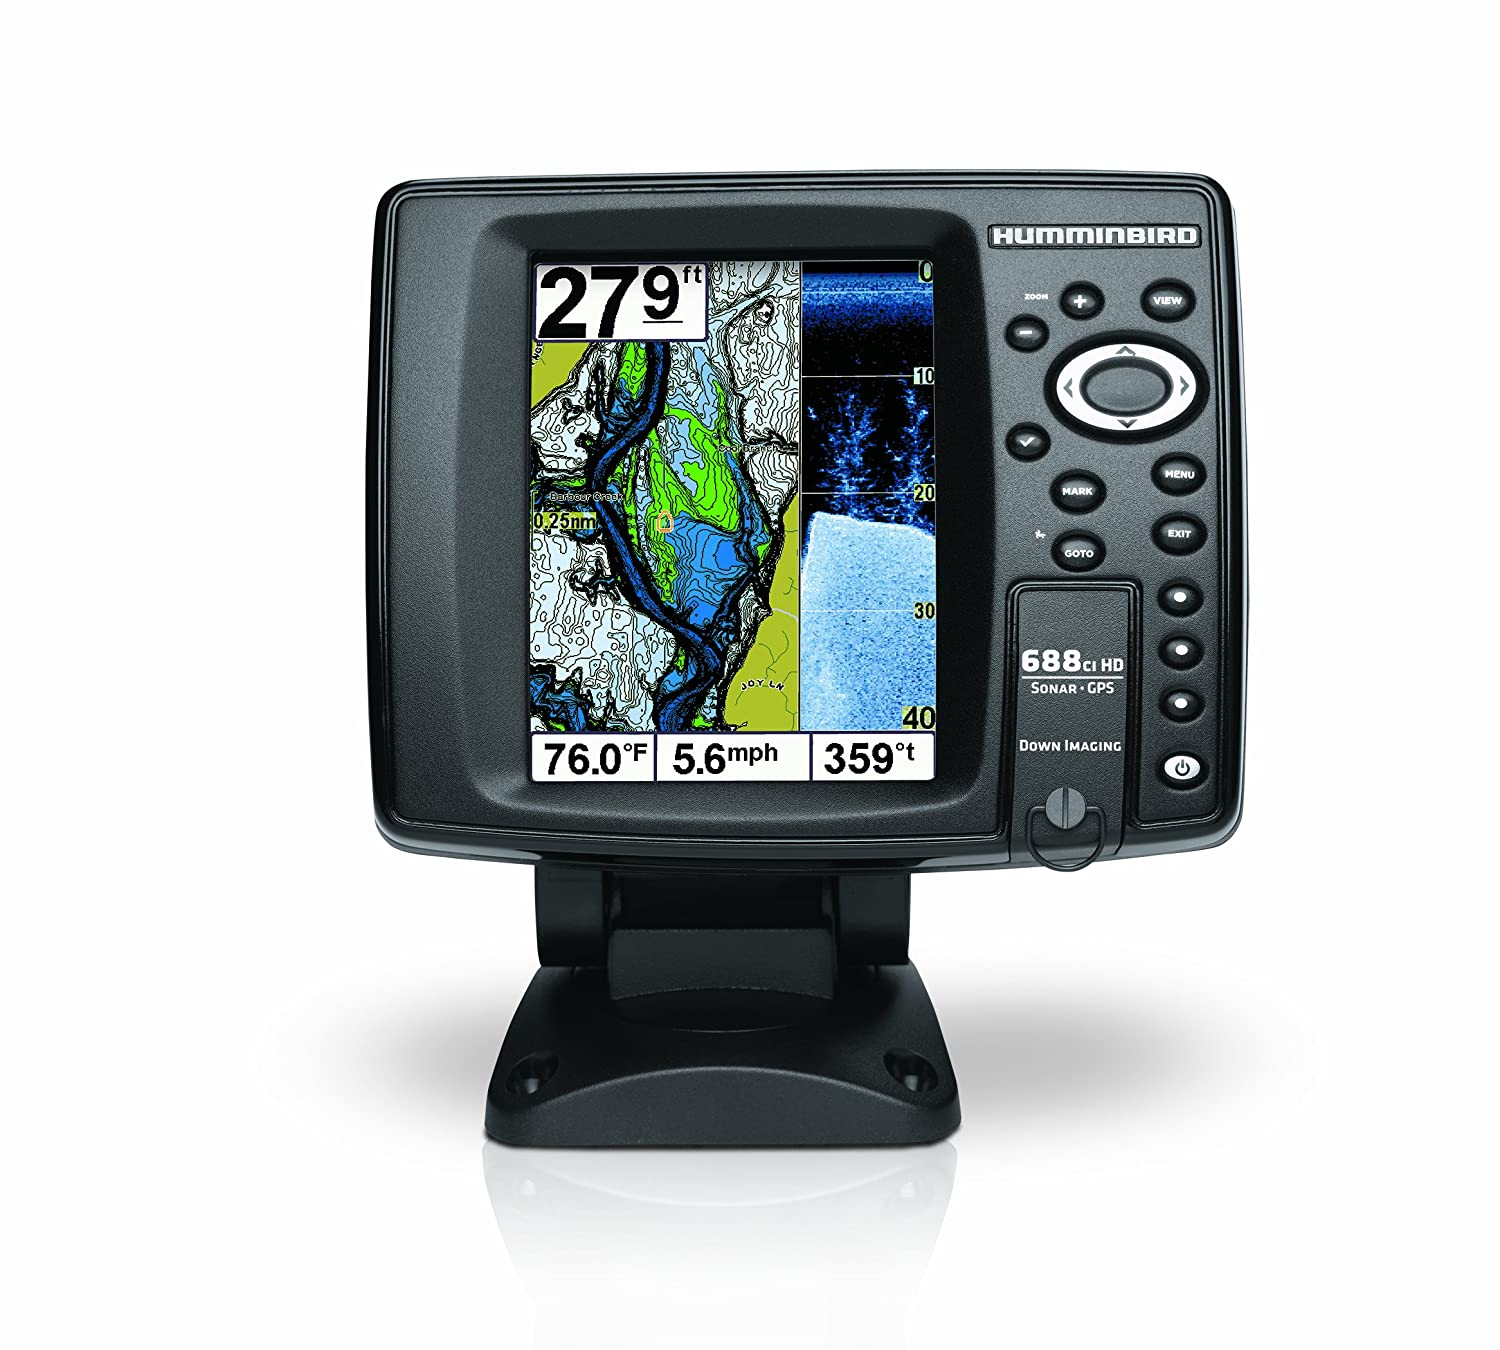 917AzA6i5EL._SL1500_ amazon com humminbird 409460 1 688ci hd di internal gps sonar  at readyjetset.co